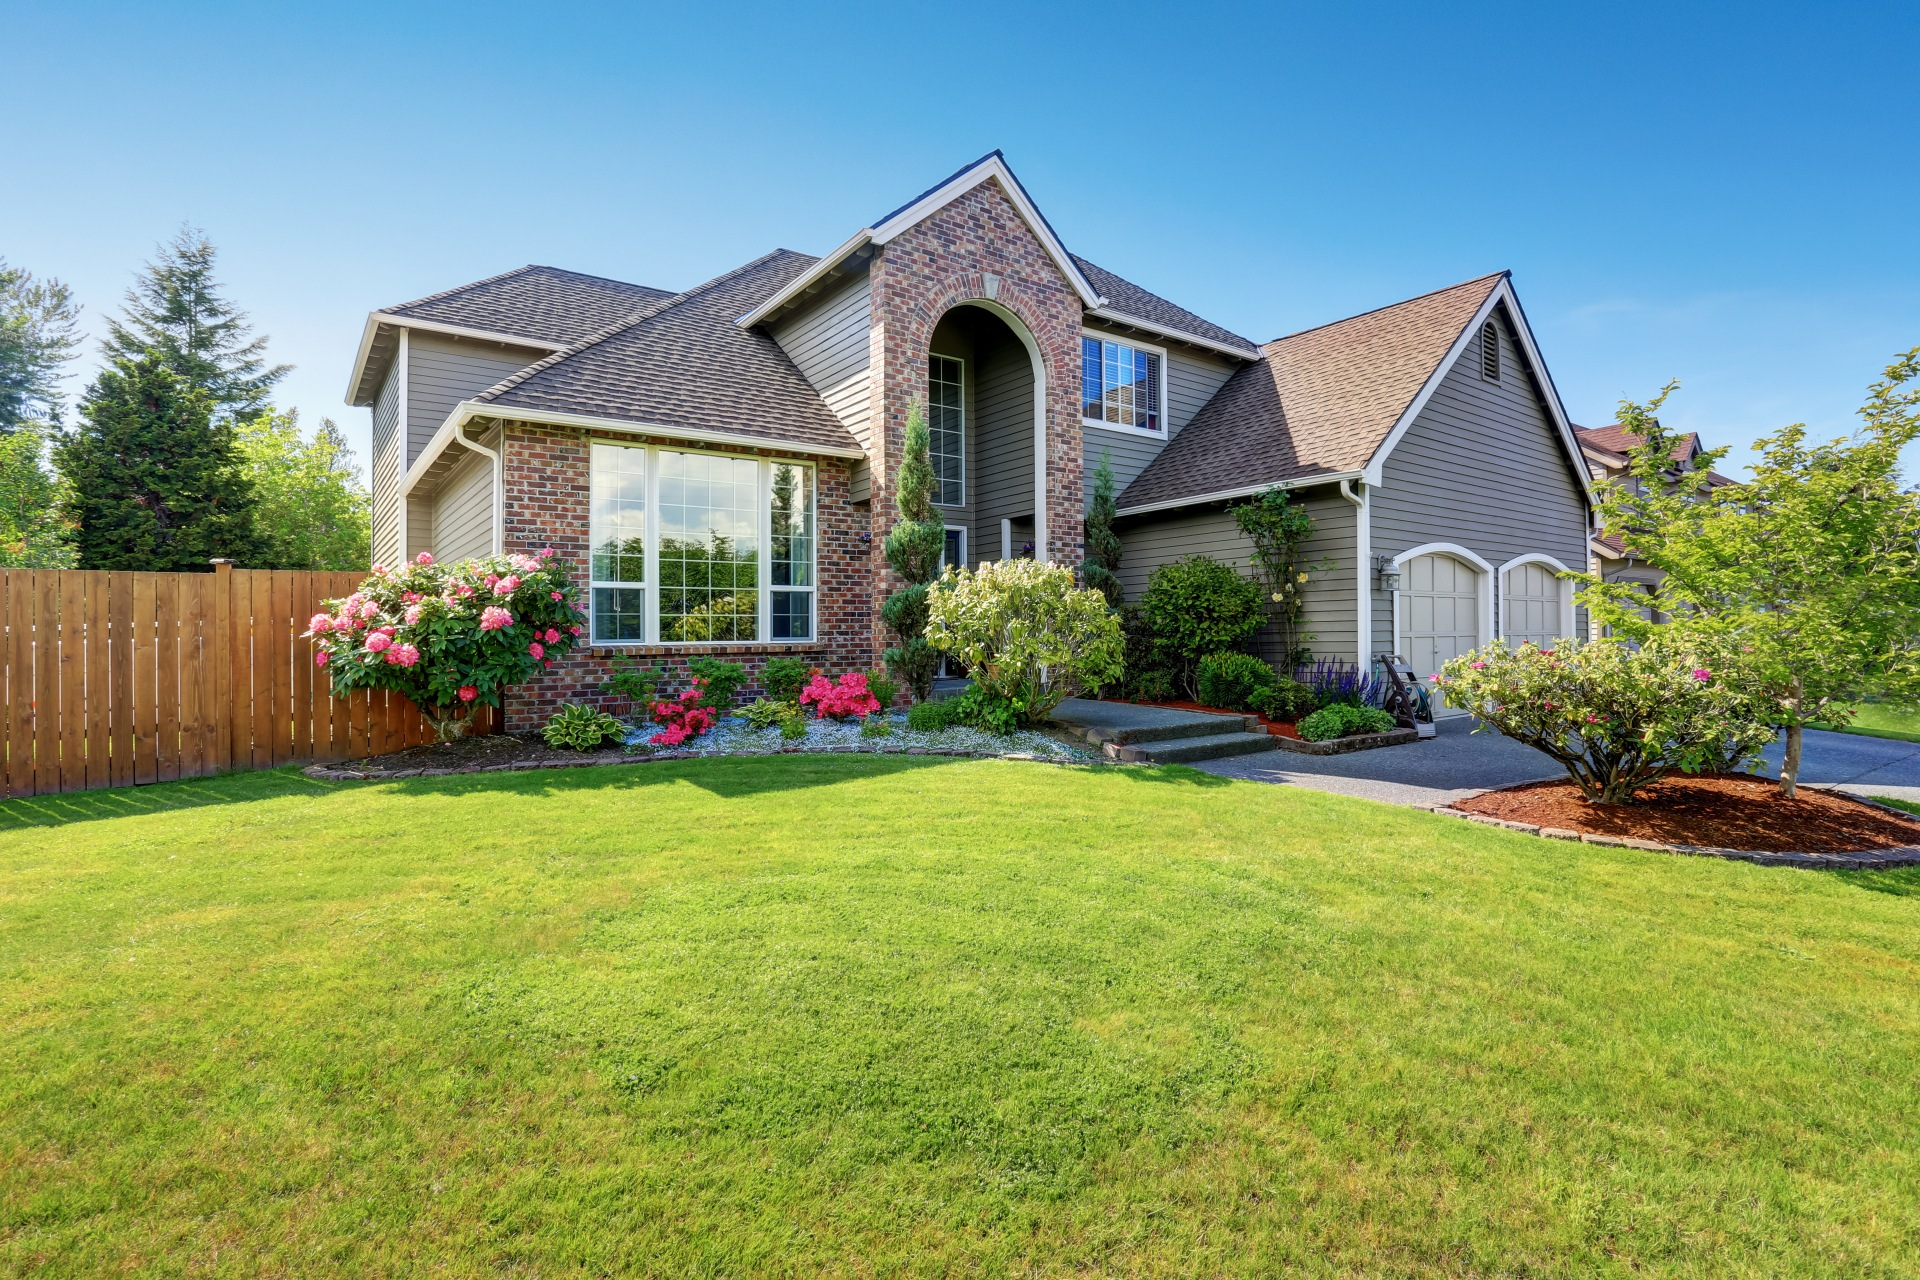 Curb Appeal 101: Spruce Up Your Front Lawn